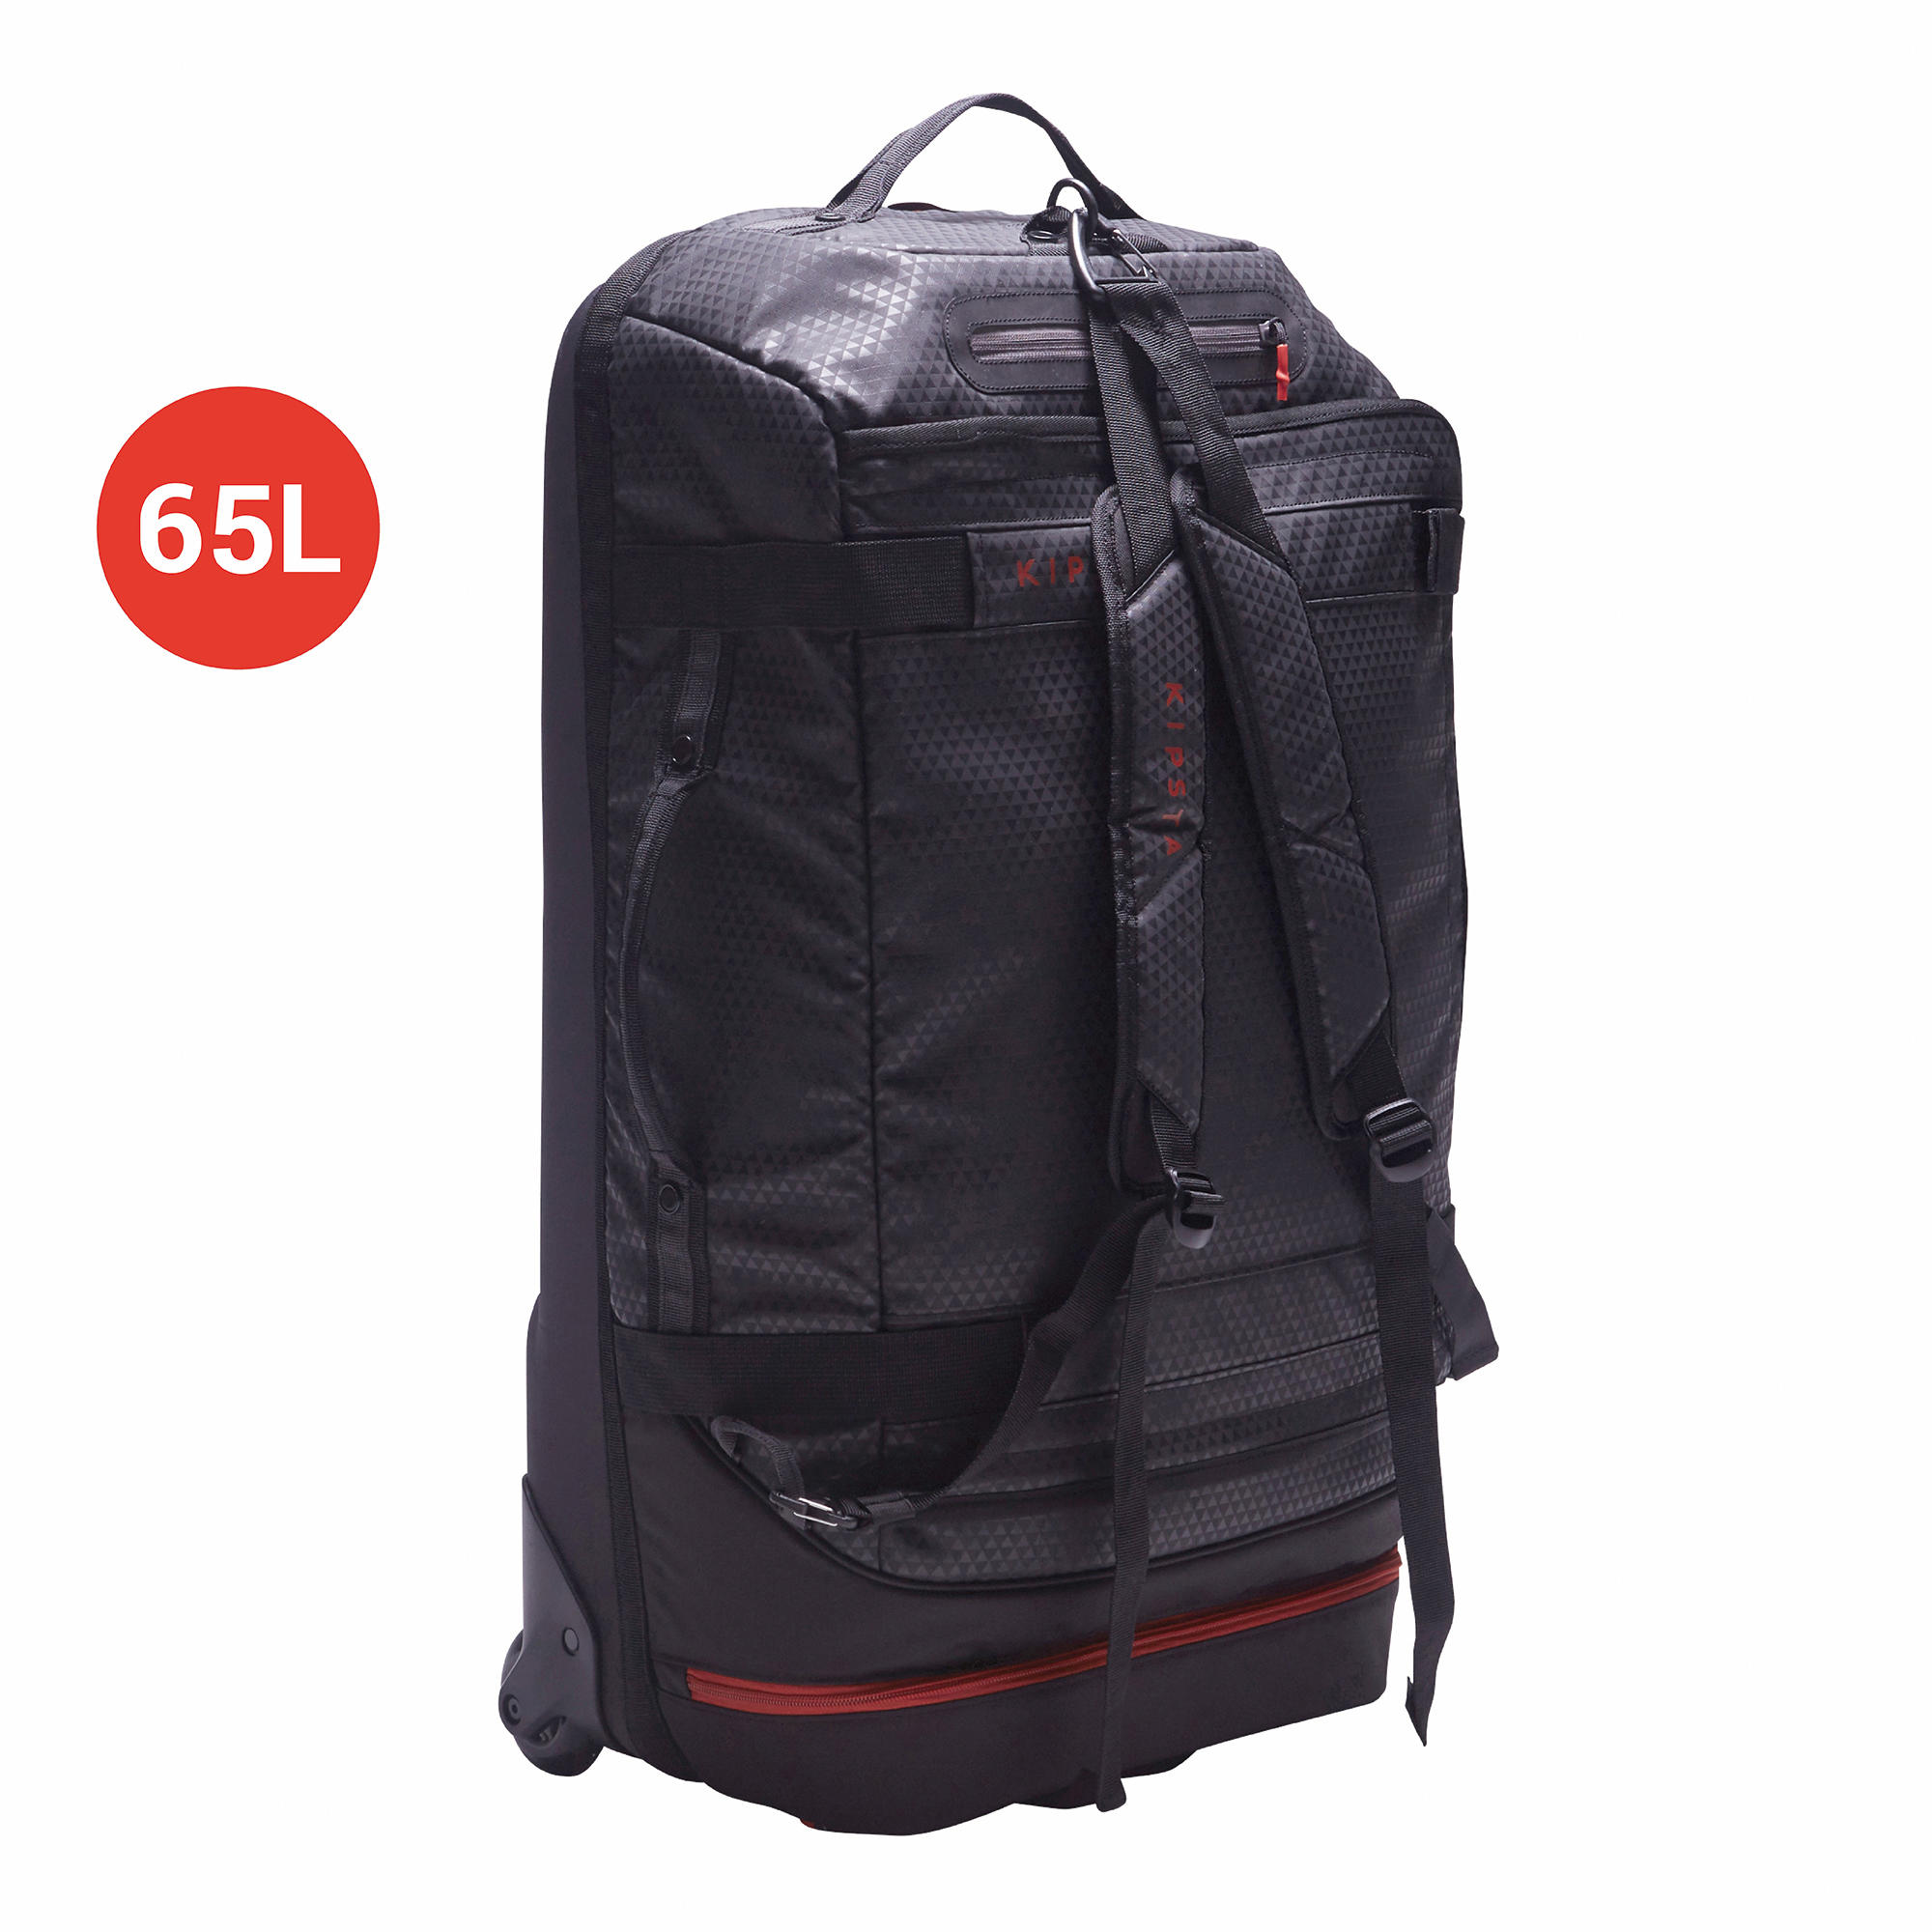 Away 65 Litre Wheeled Sports Bag - Black/Red